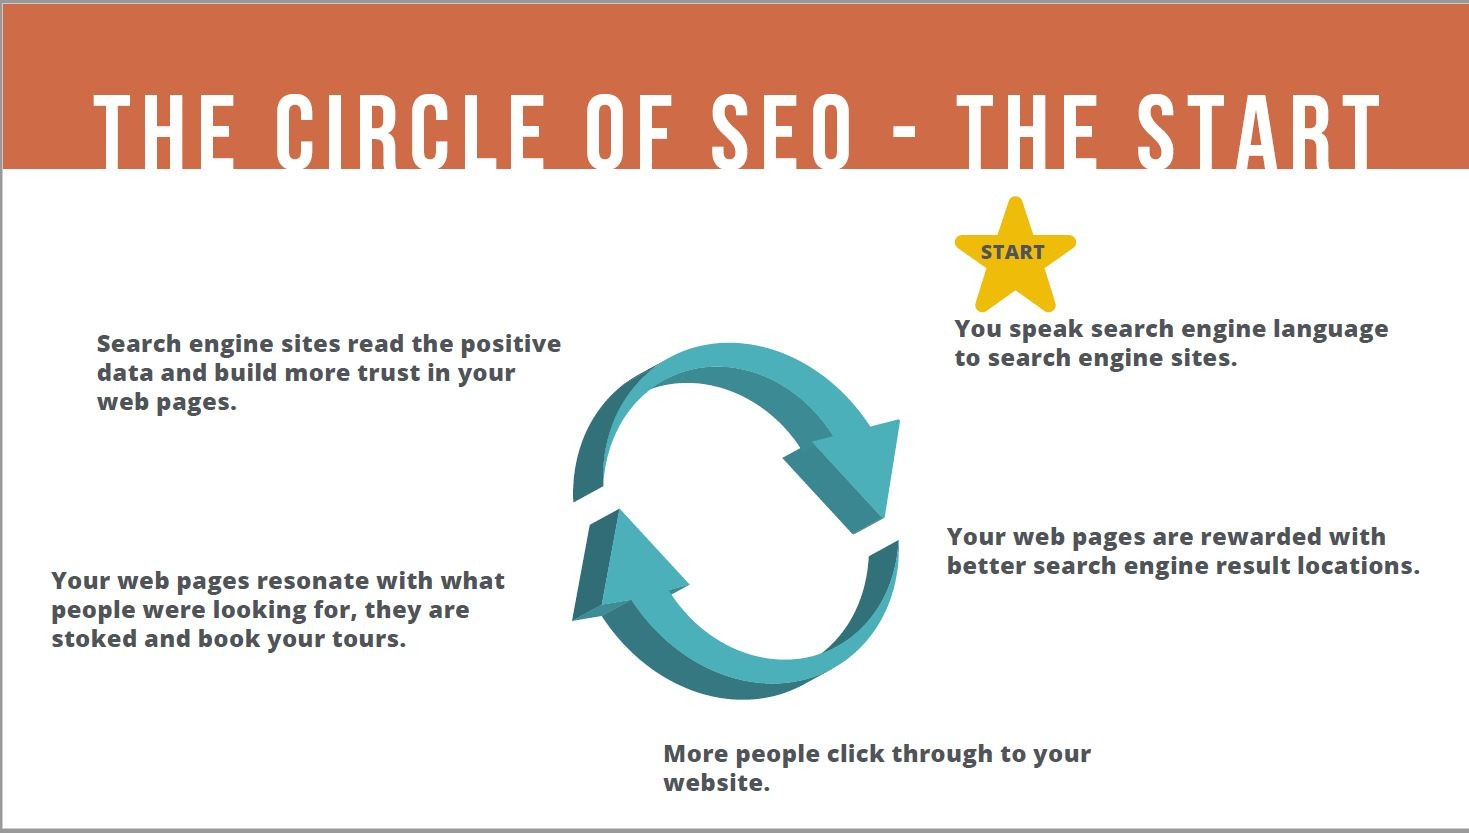 SEO for Tour Operators, Learn SEO at your own pace, SEO for Tour Companies